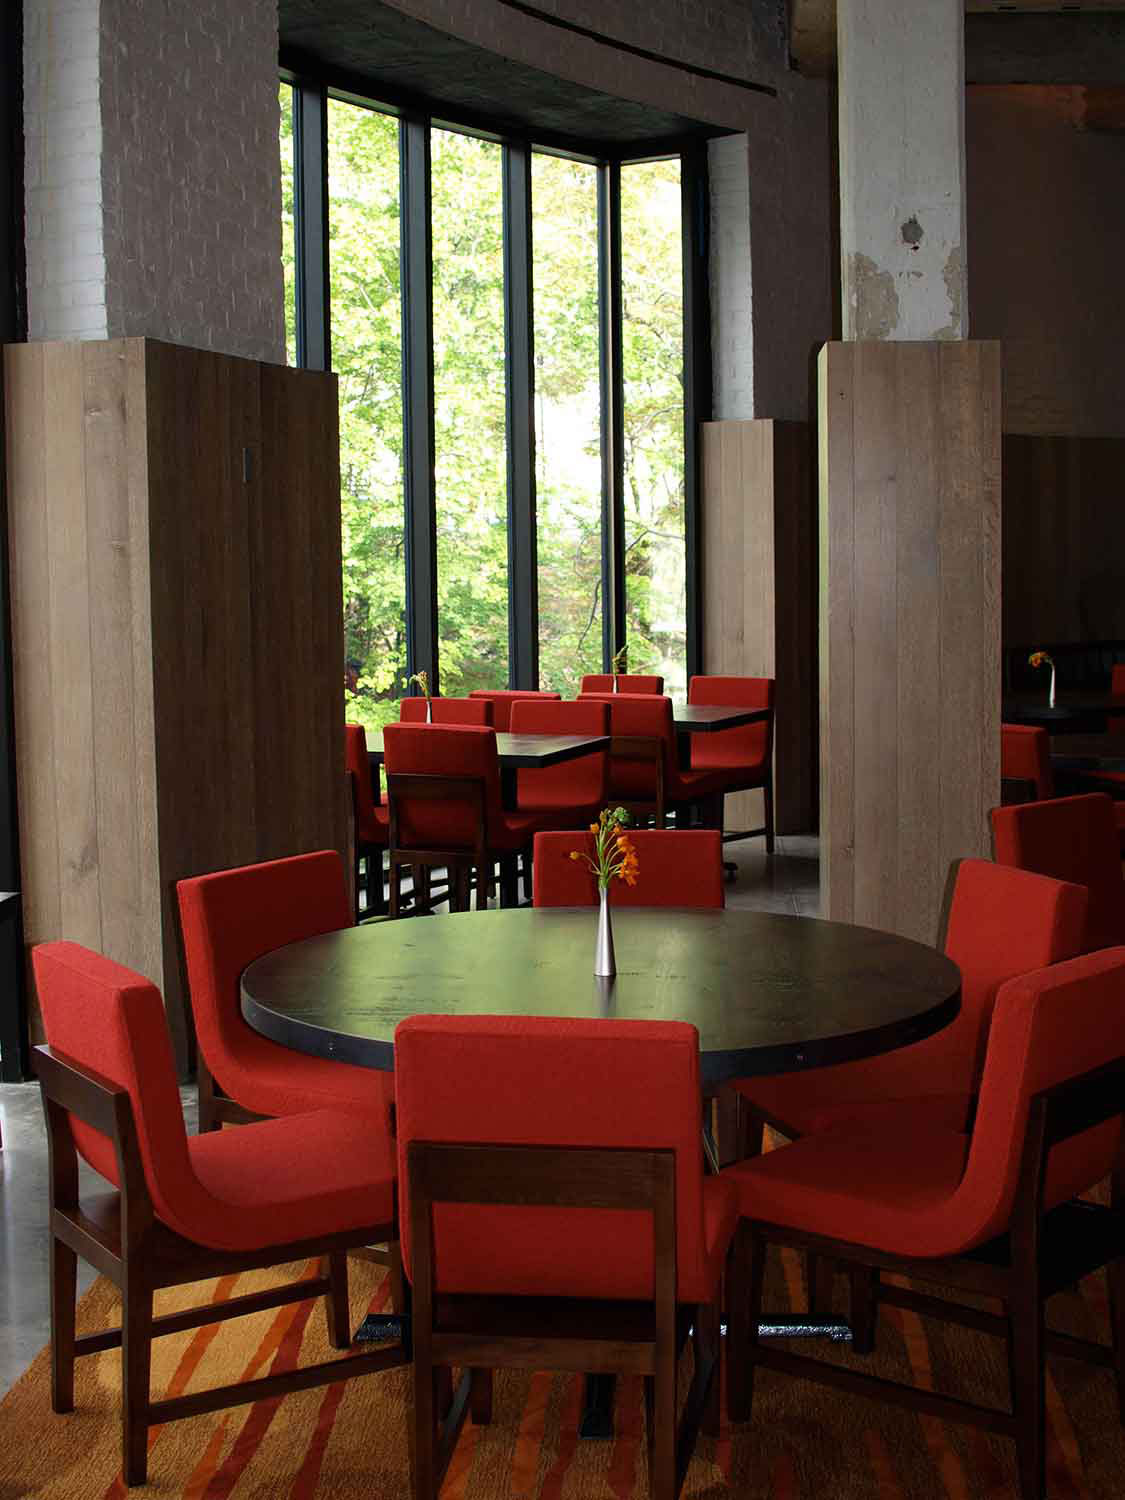 roundhouse-dining-tables-5101810.jpg